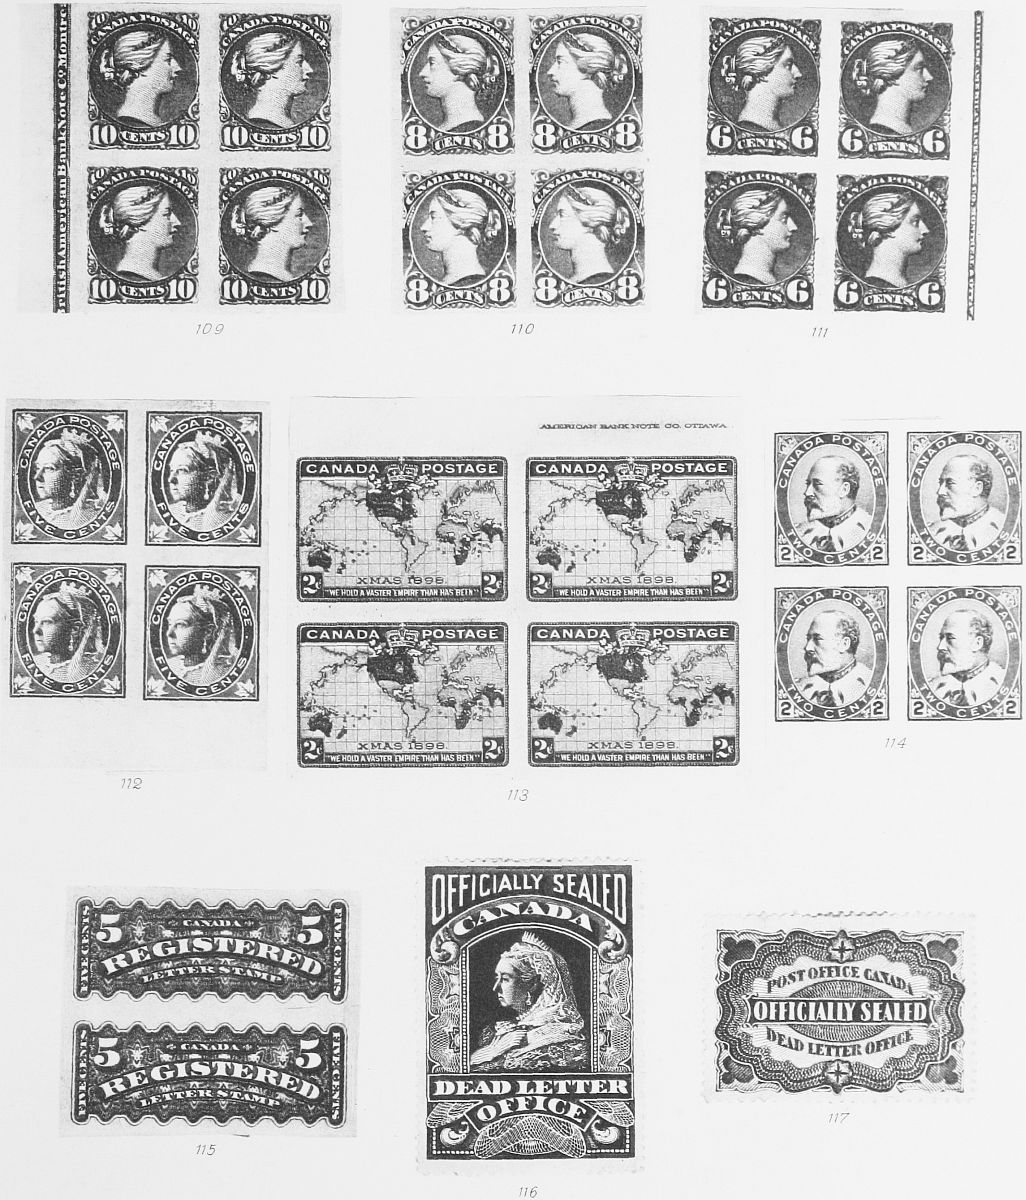 The project gutenberg ebook of canada its postage stamps and postal the project gutenberg ebook of canada its postage stamps and postal stationery by clifton armstrong howes fandeluxe Choice Image